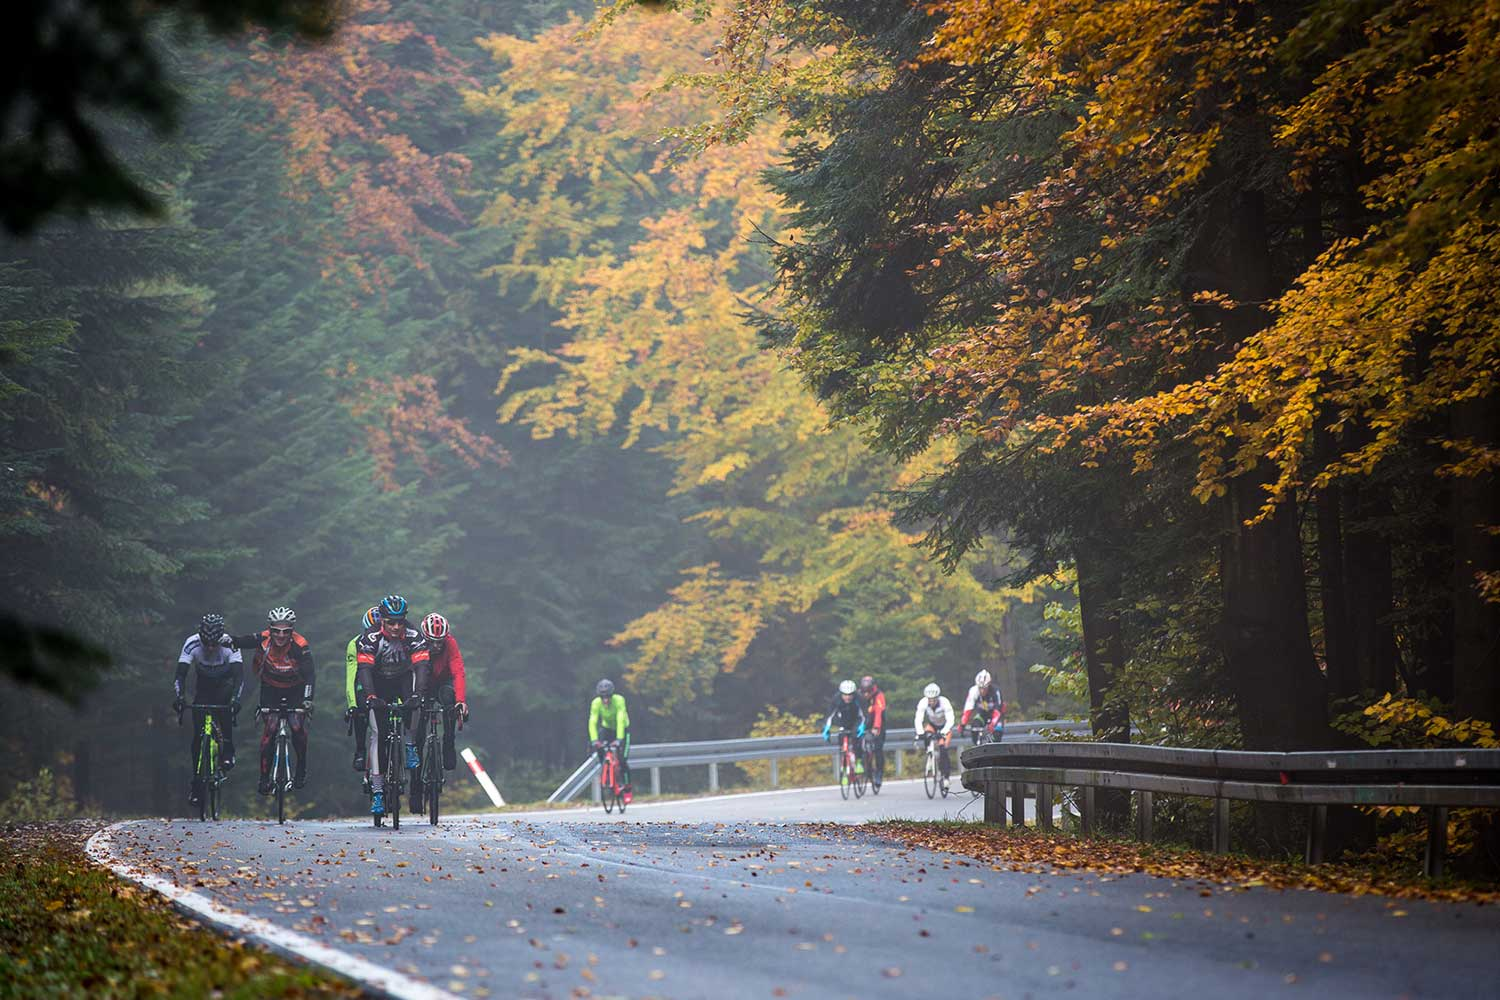 Group of cyclists riding during the fall